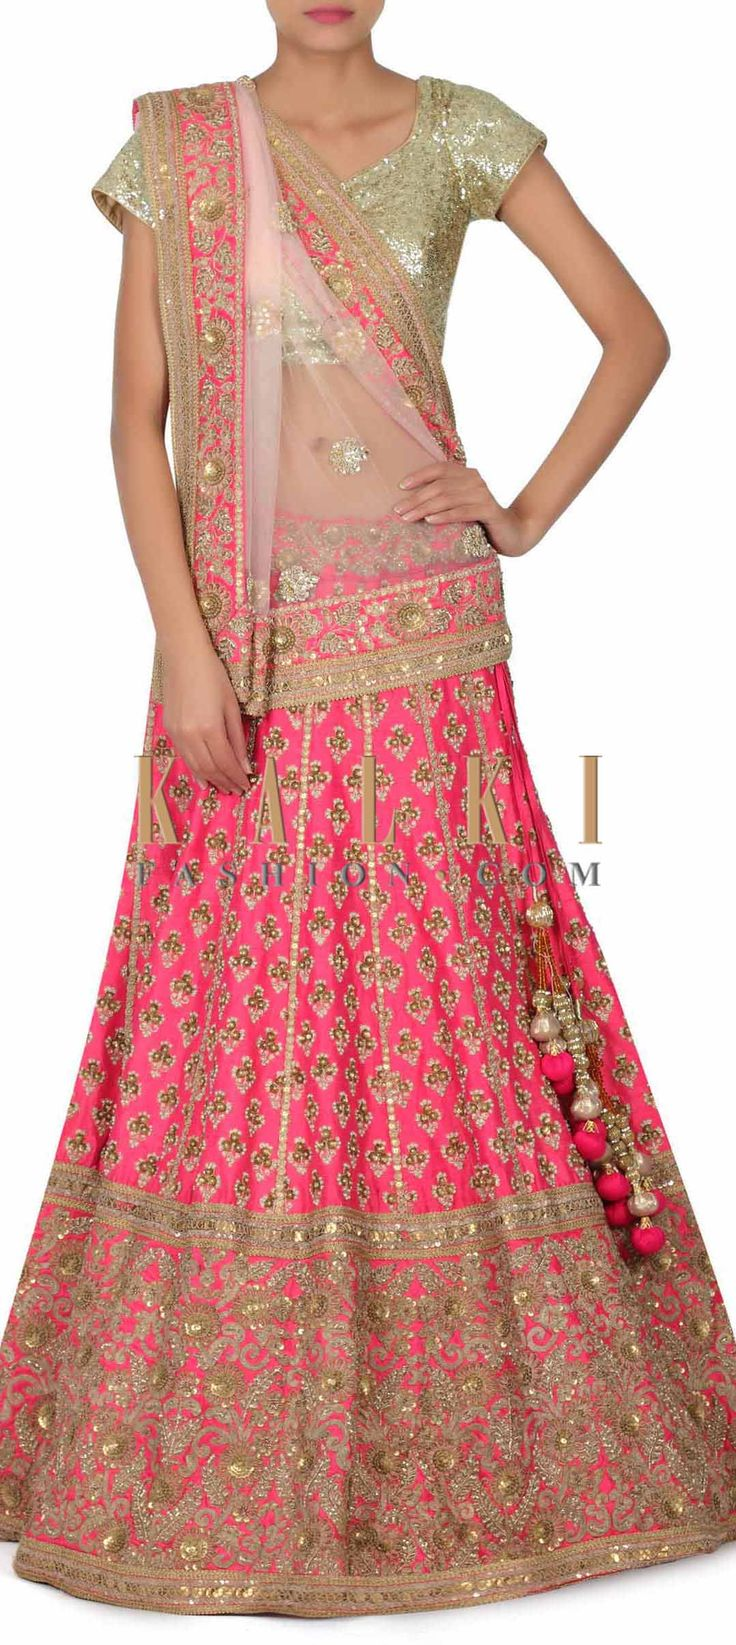 Buy this Rani pink lehenga adorn in sequin and moti embroidery only on Kalki